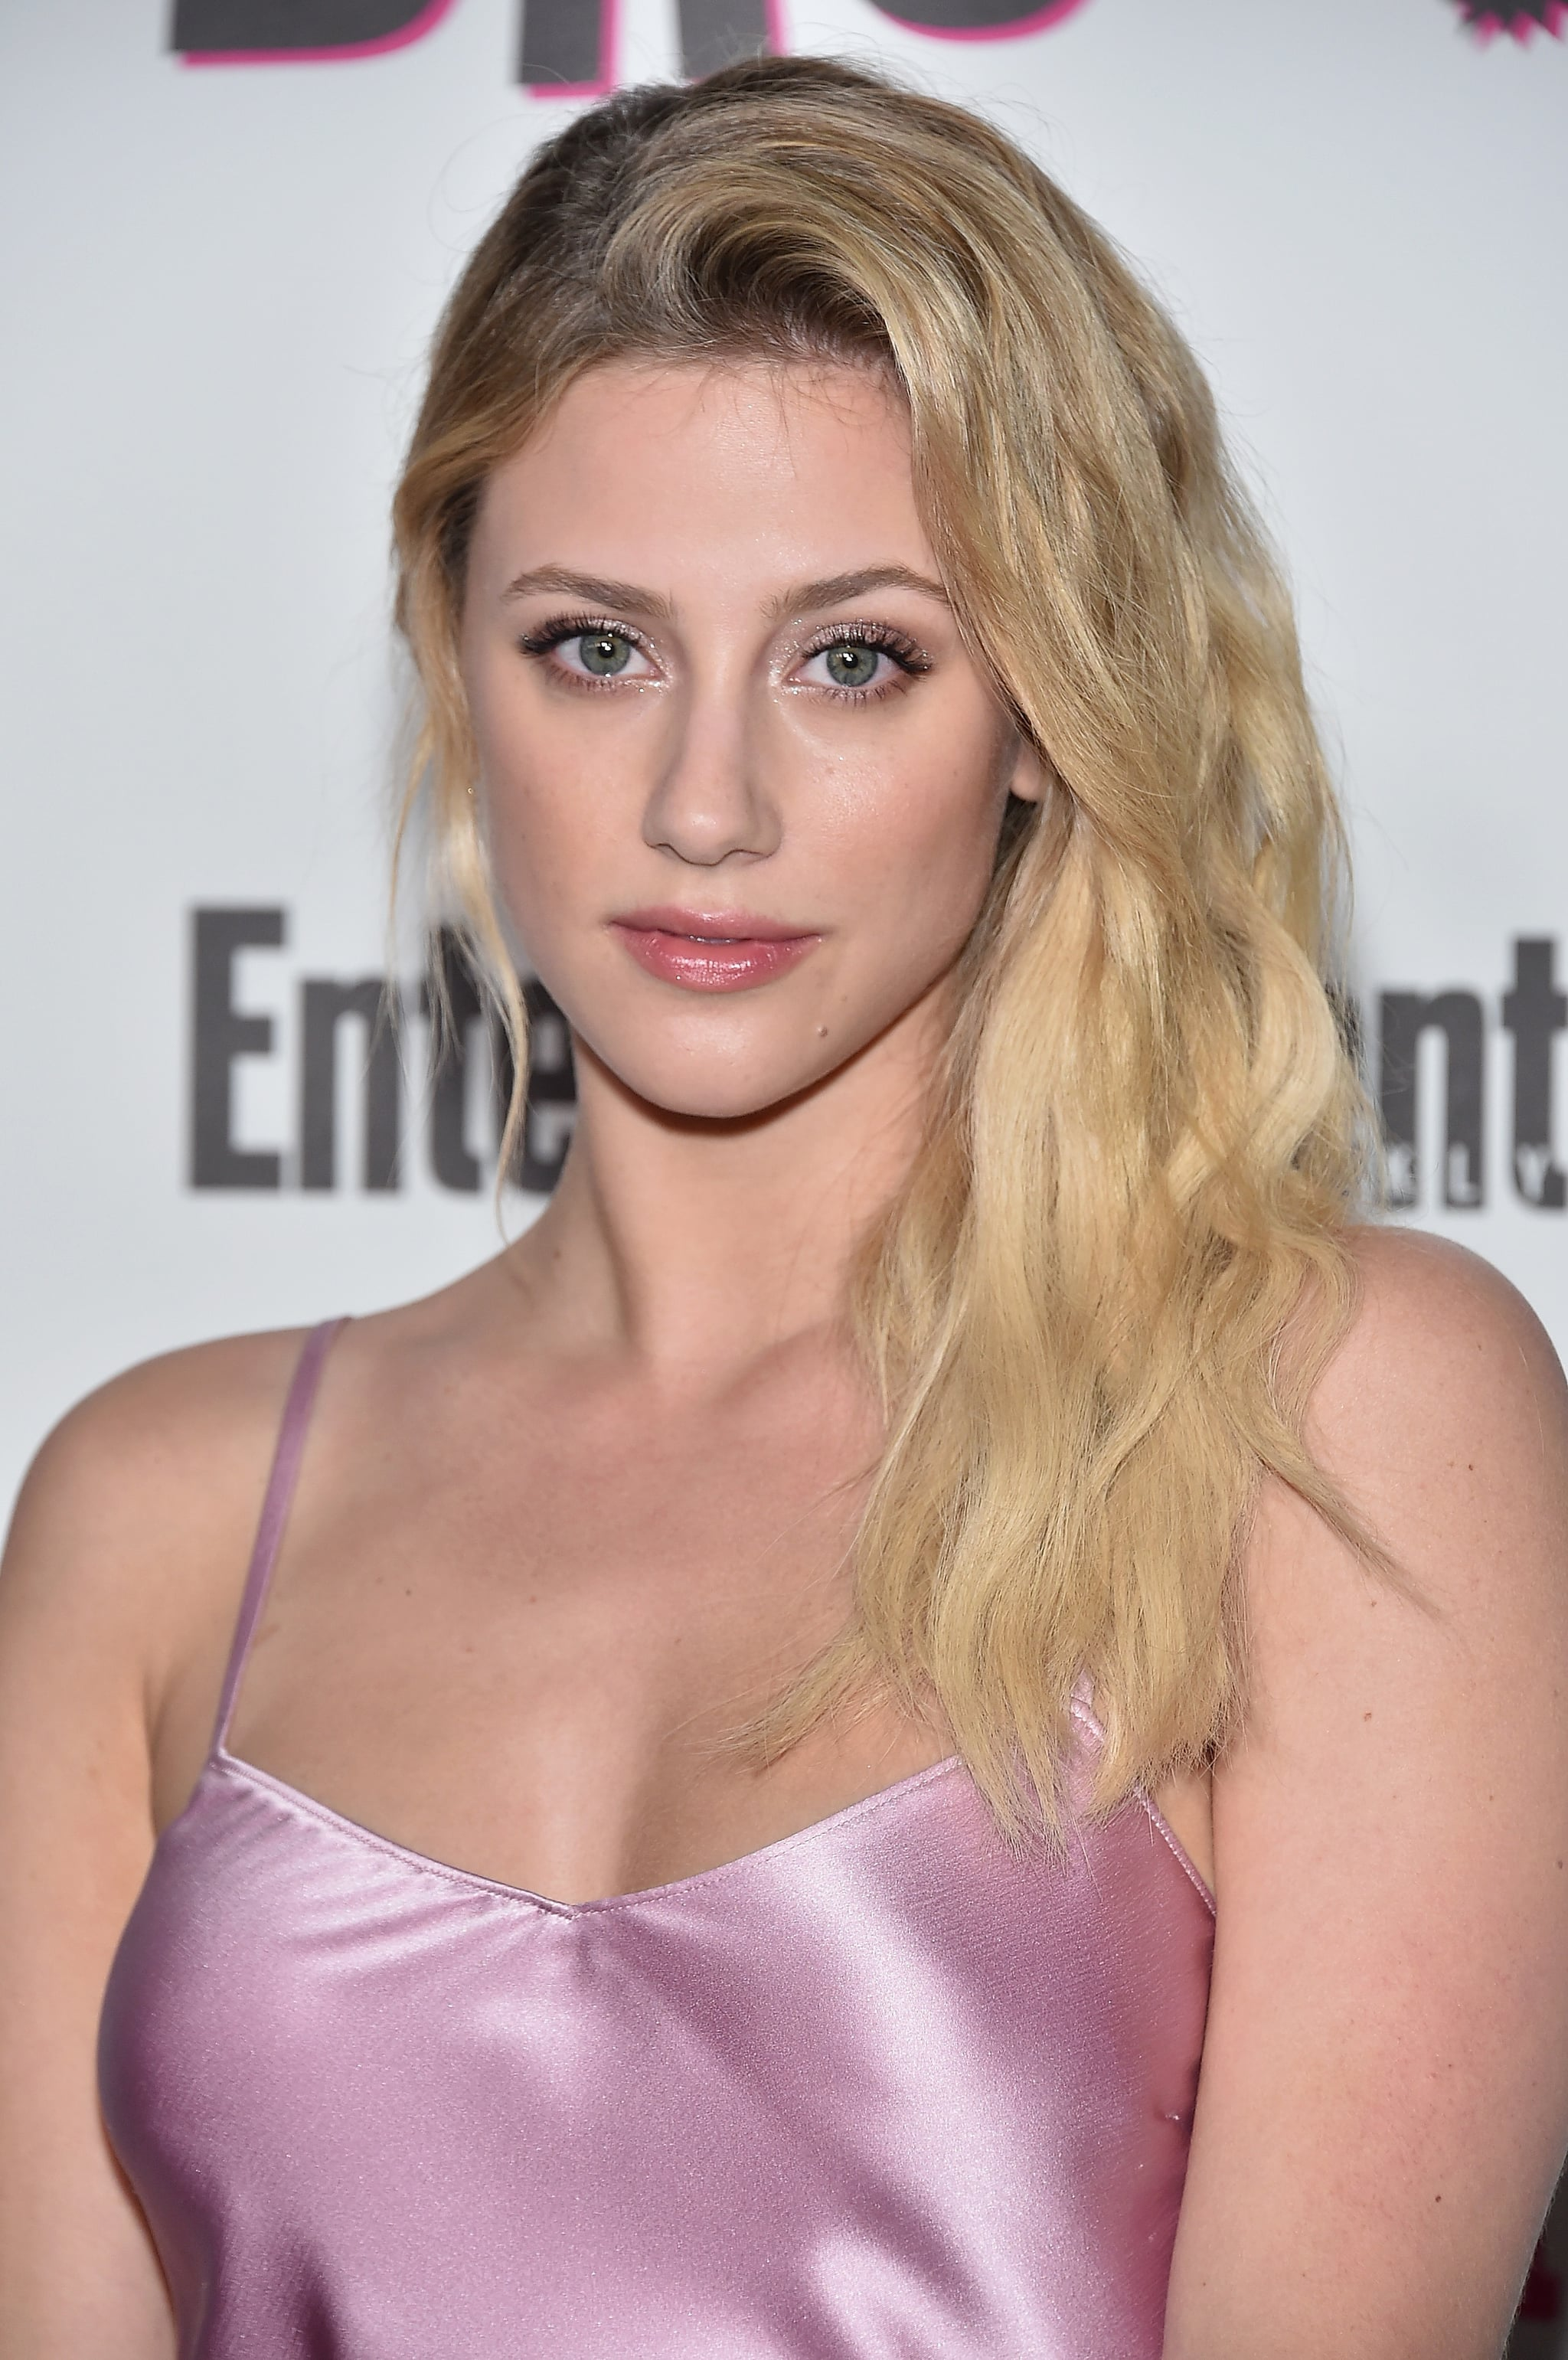 Lili Reinhart betty cooper